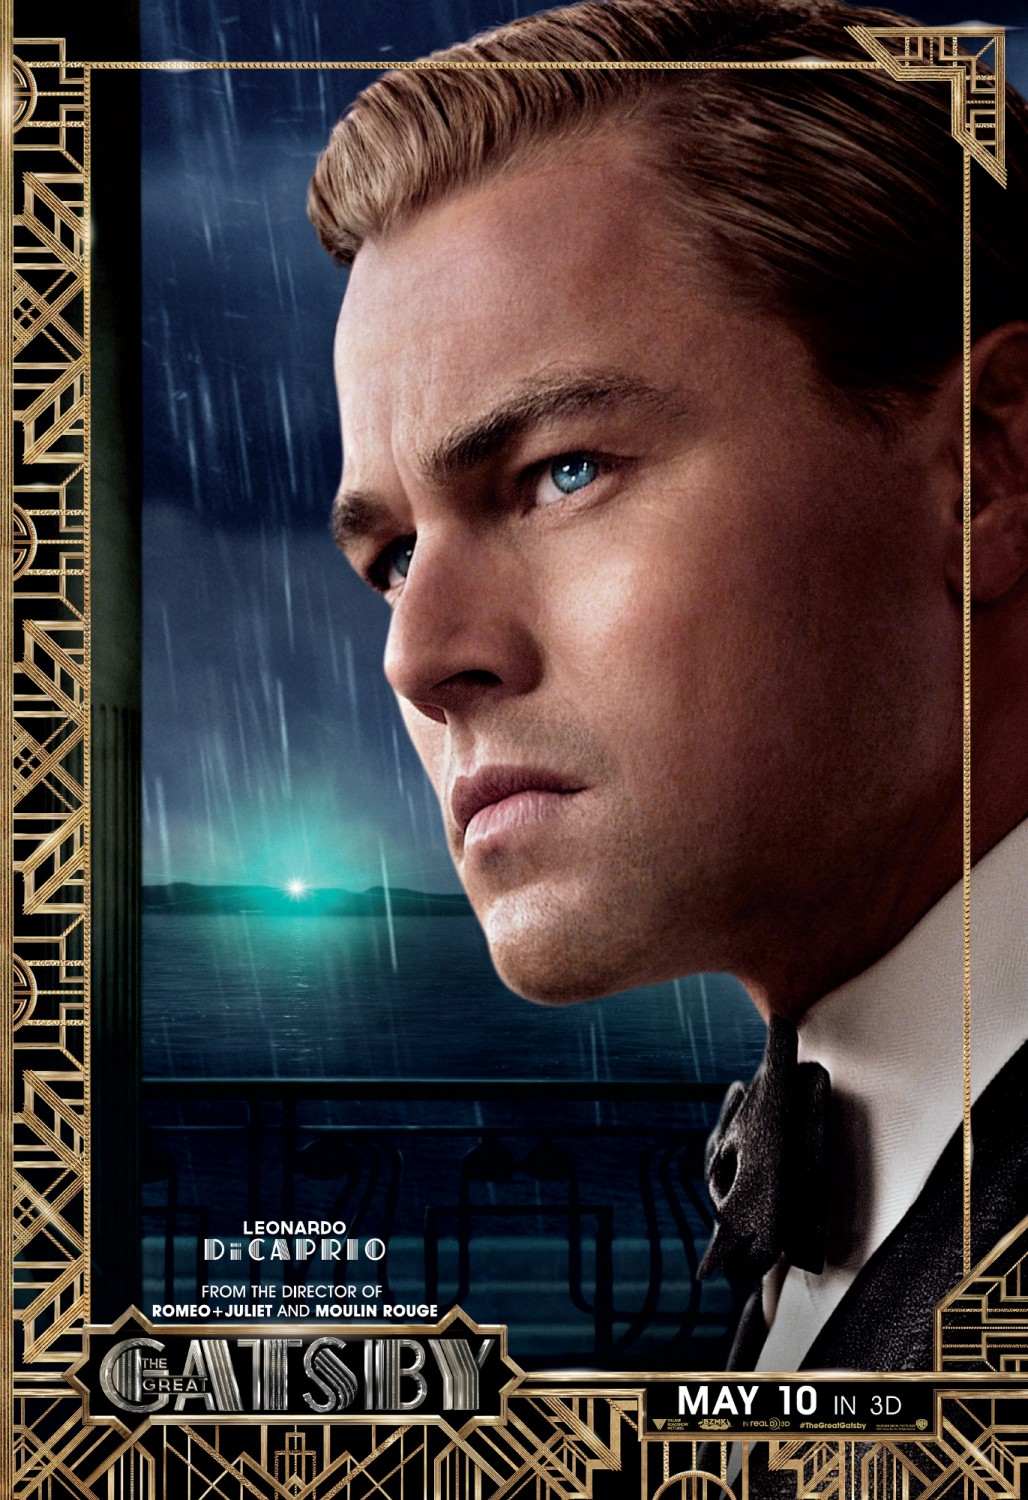 th great gatsby The great gatsby (2013) nick, finds himself drawn to the past and lifestyle of his millionaire neighbor, jay gatsby 73/10 407,980 rate.